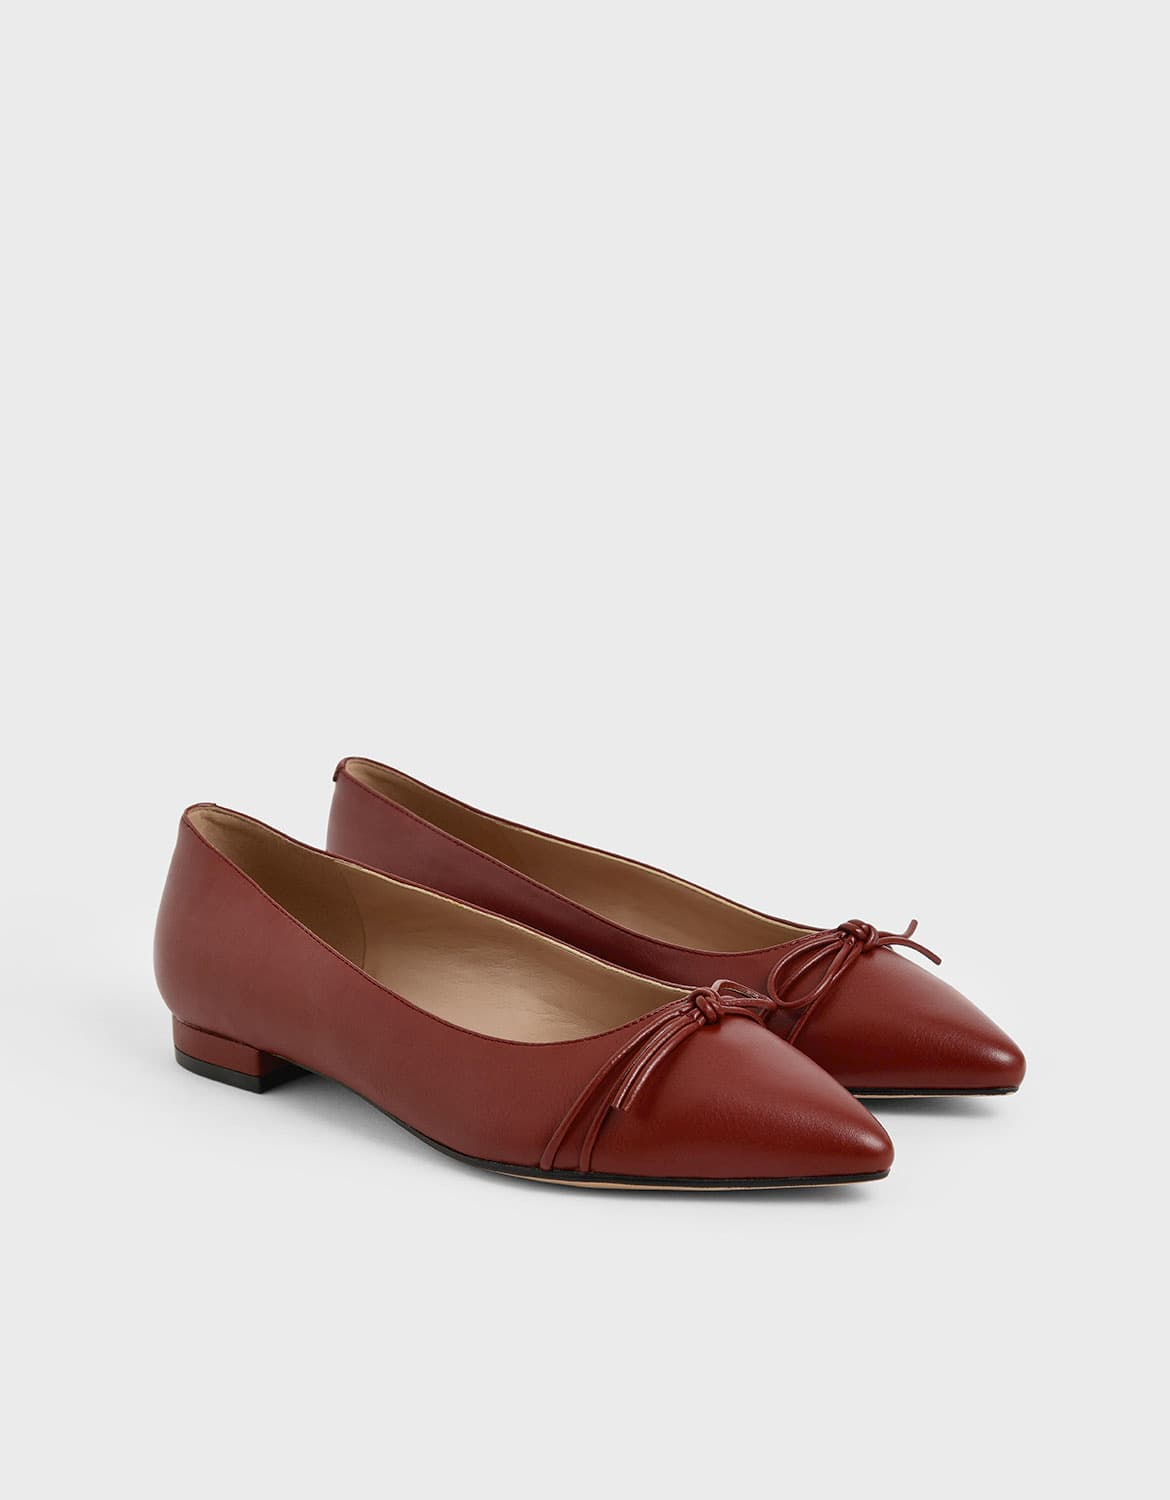 ribbon tie ballerina flats in red – CHARLES & KEITH